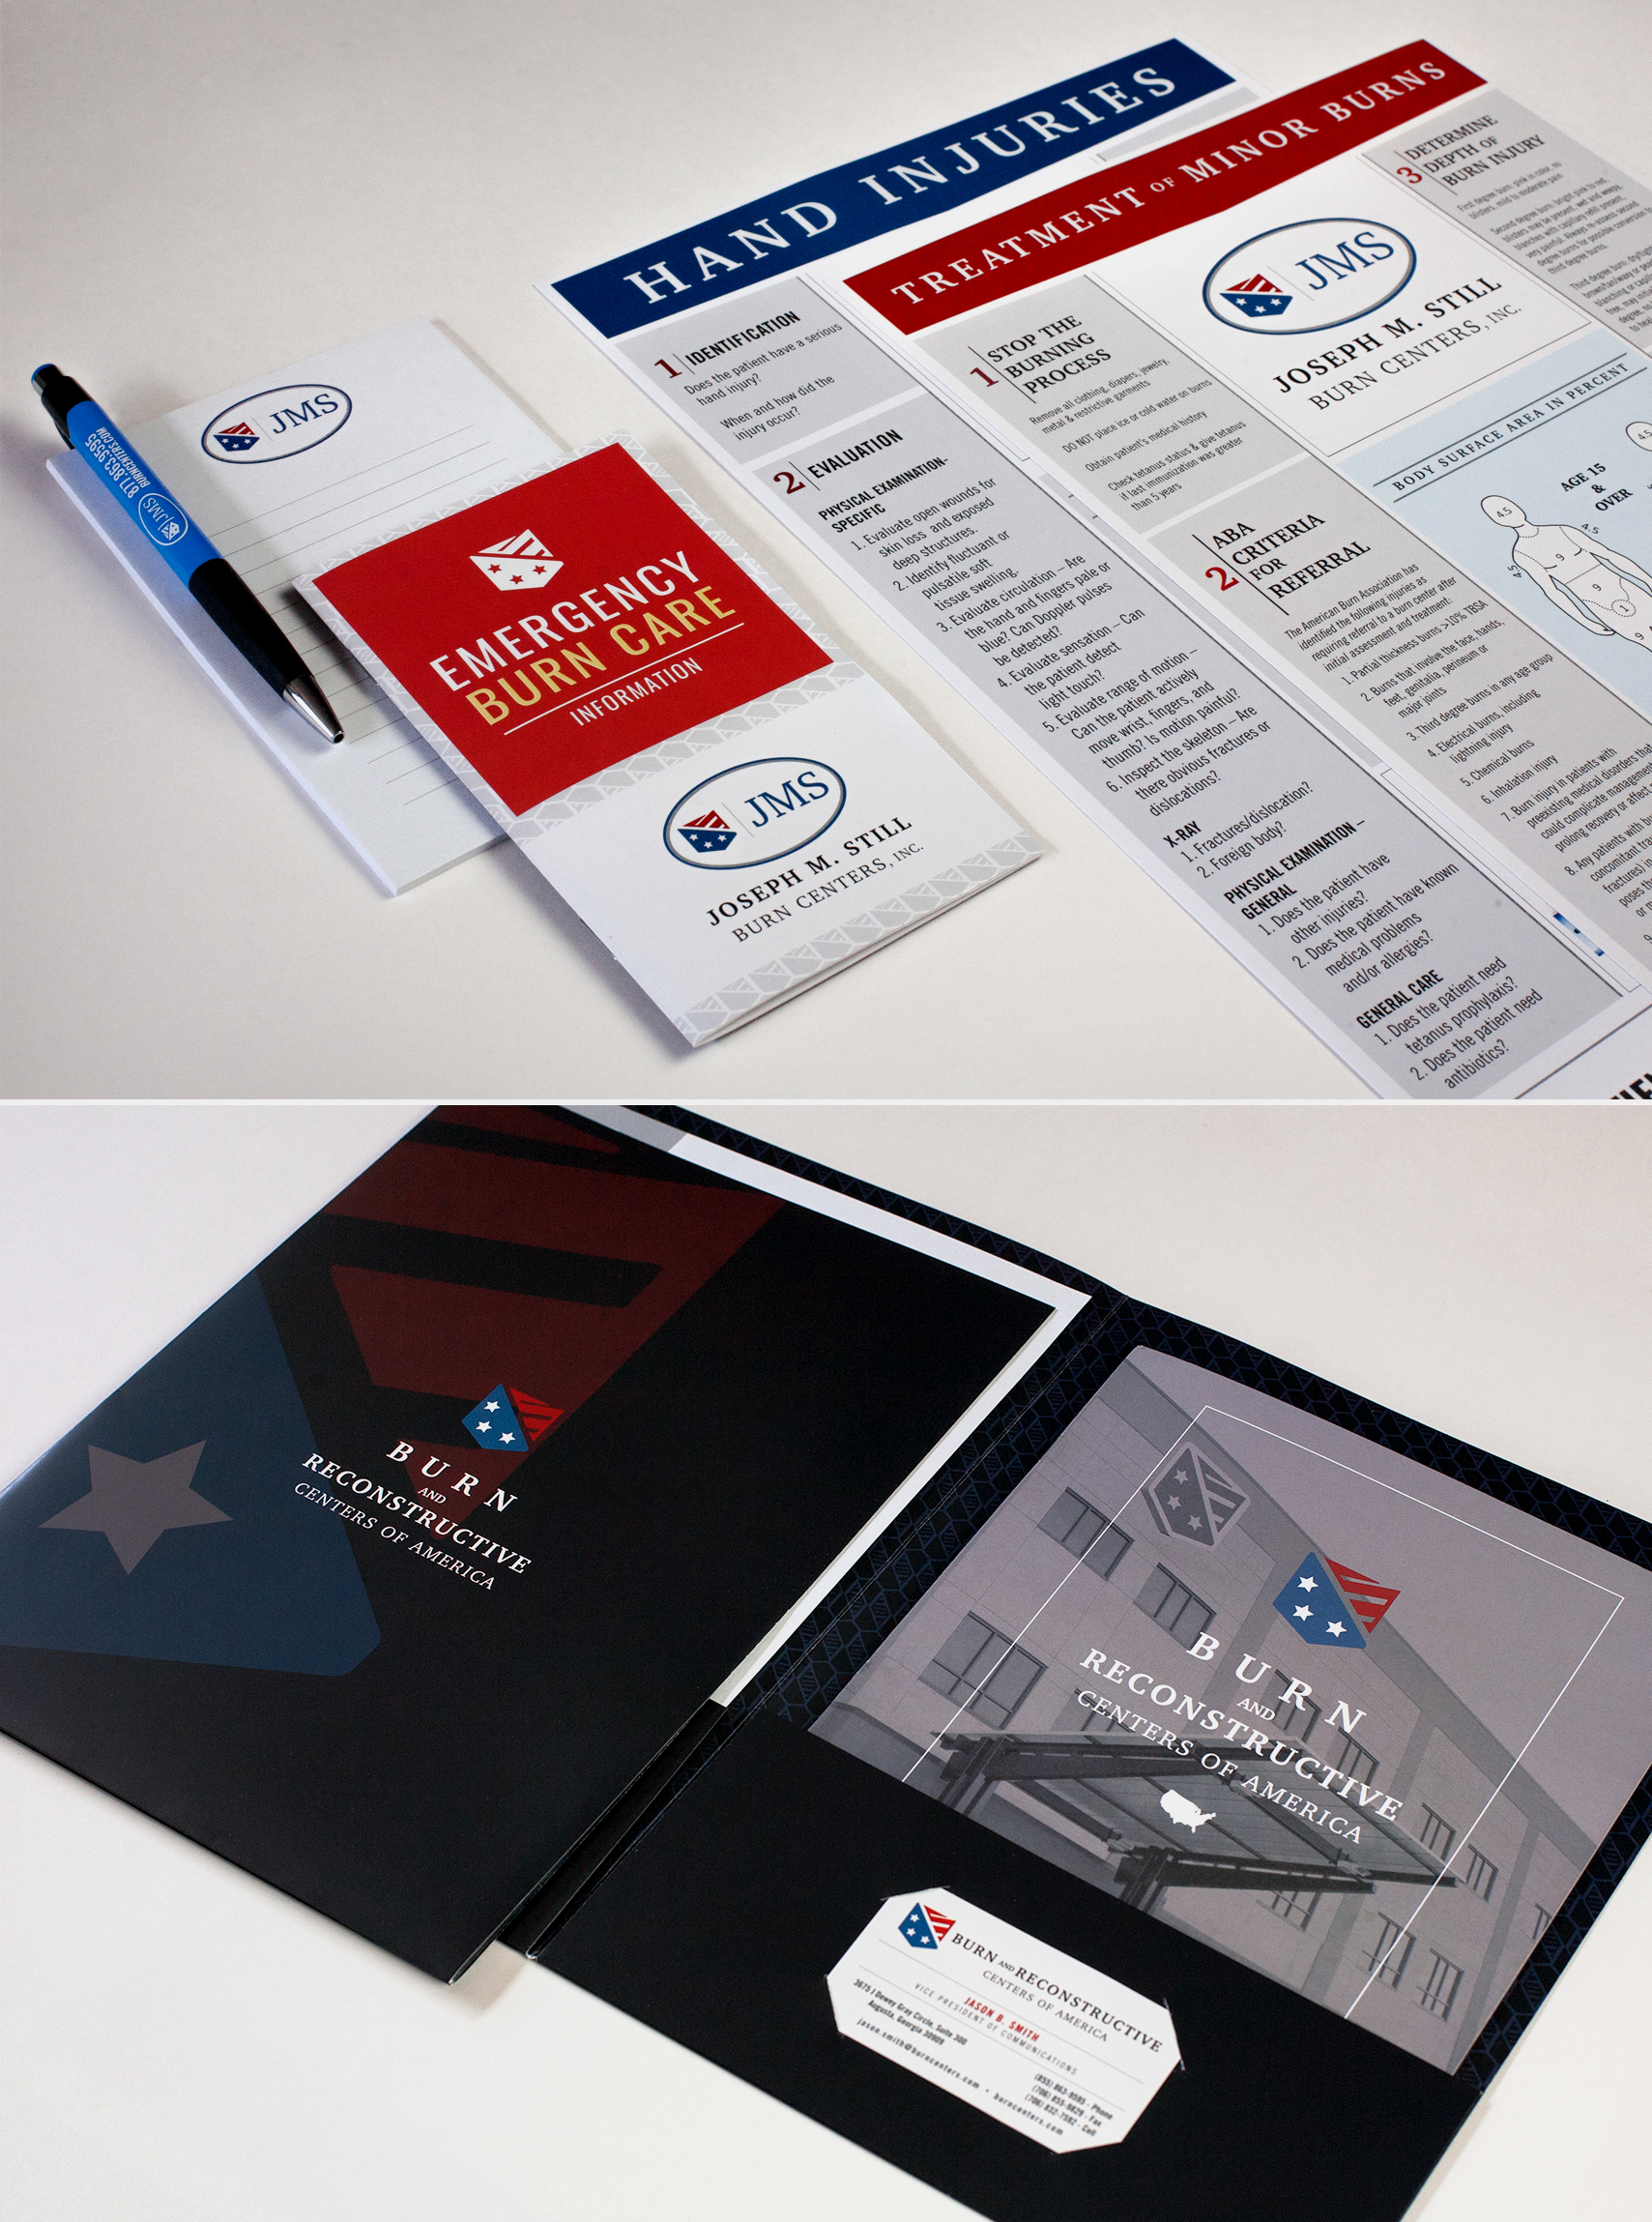 Burn and Reconstructive Center of America - Packet Design